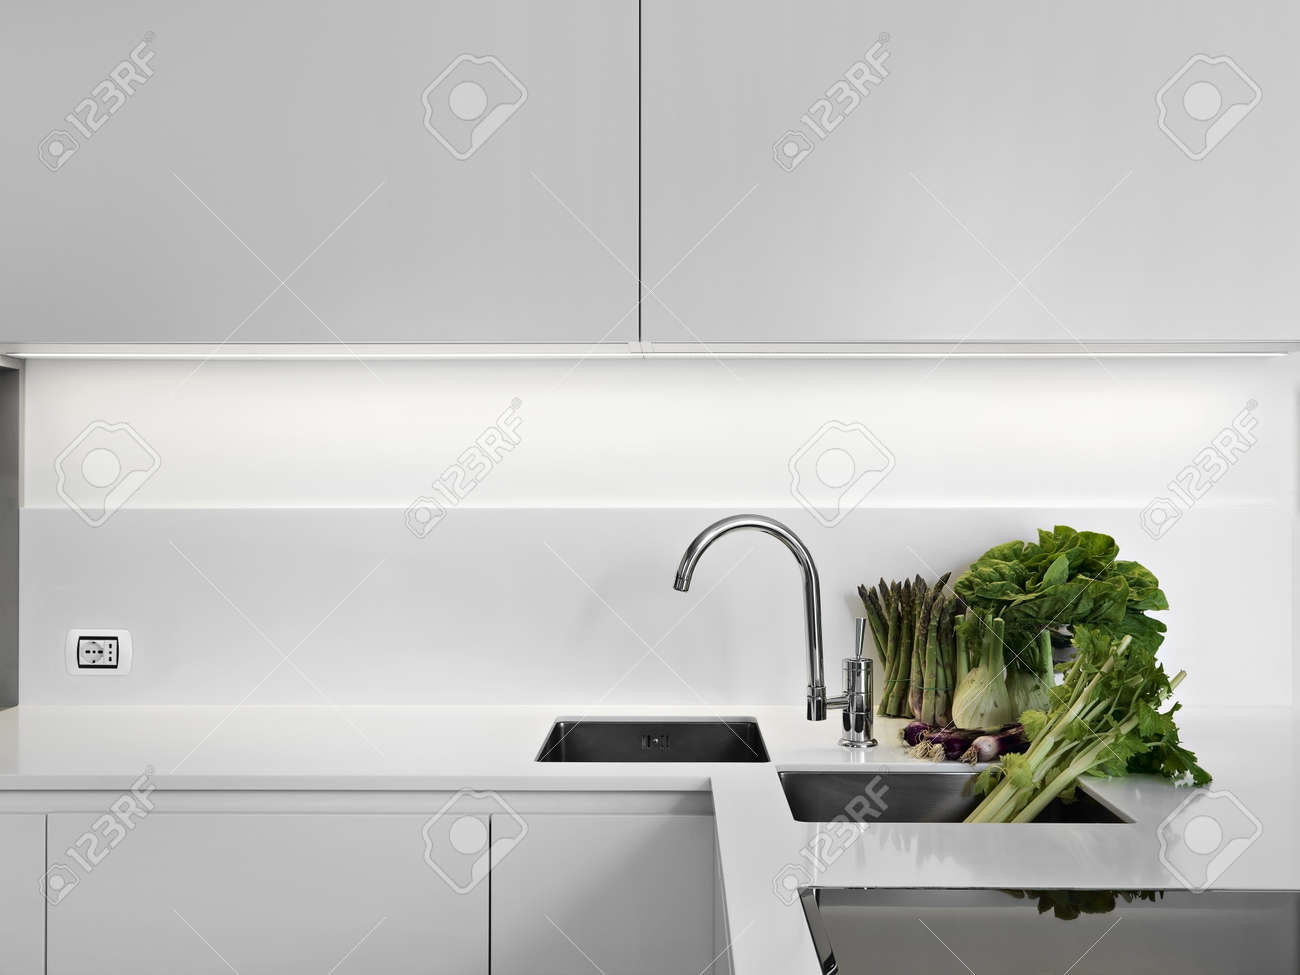 White Laminate Kitchen Worktops Modern White Laminate Kitchen With Vegetables On The White Worktop